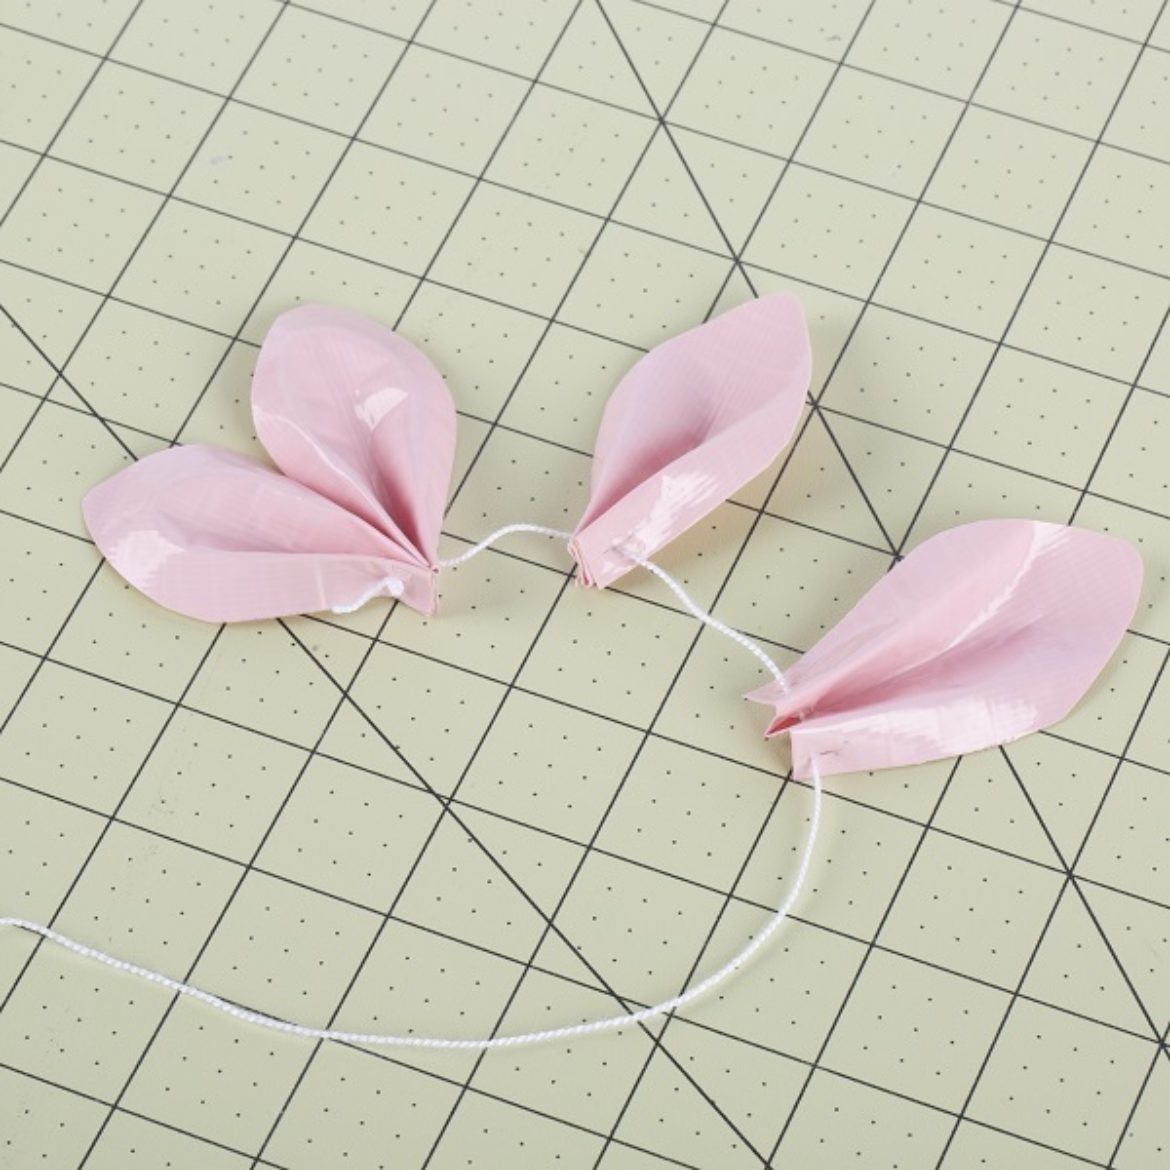 previous petal making steps repeated until there are 6 petals